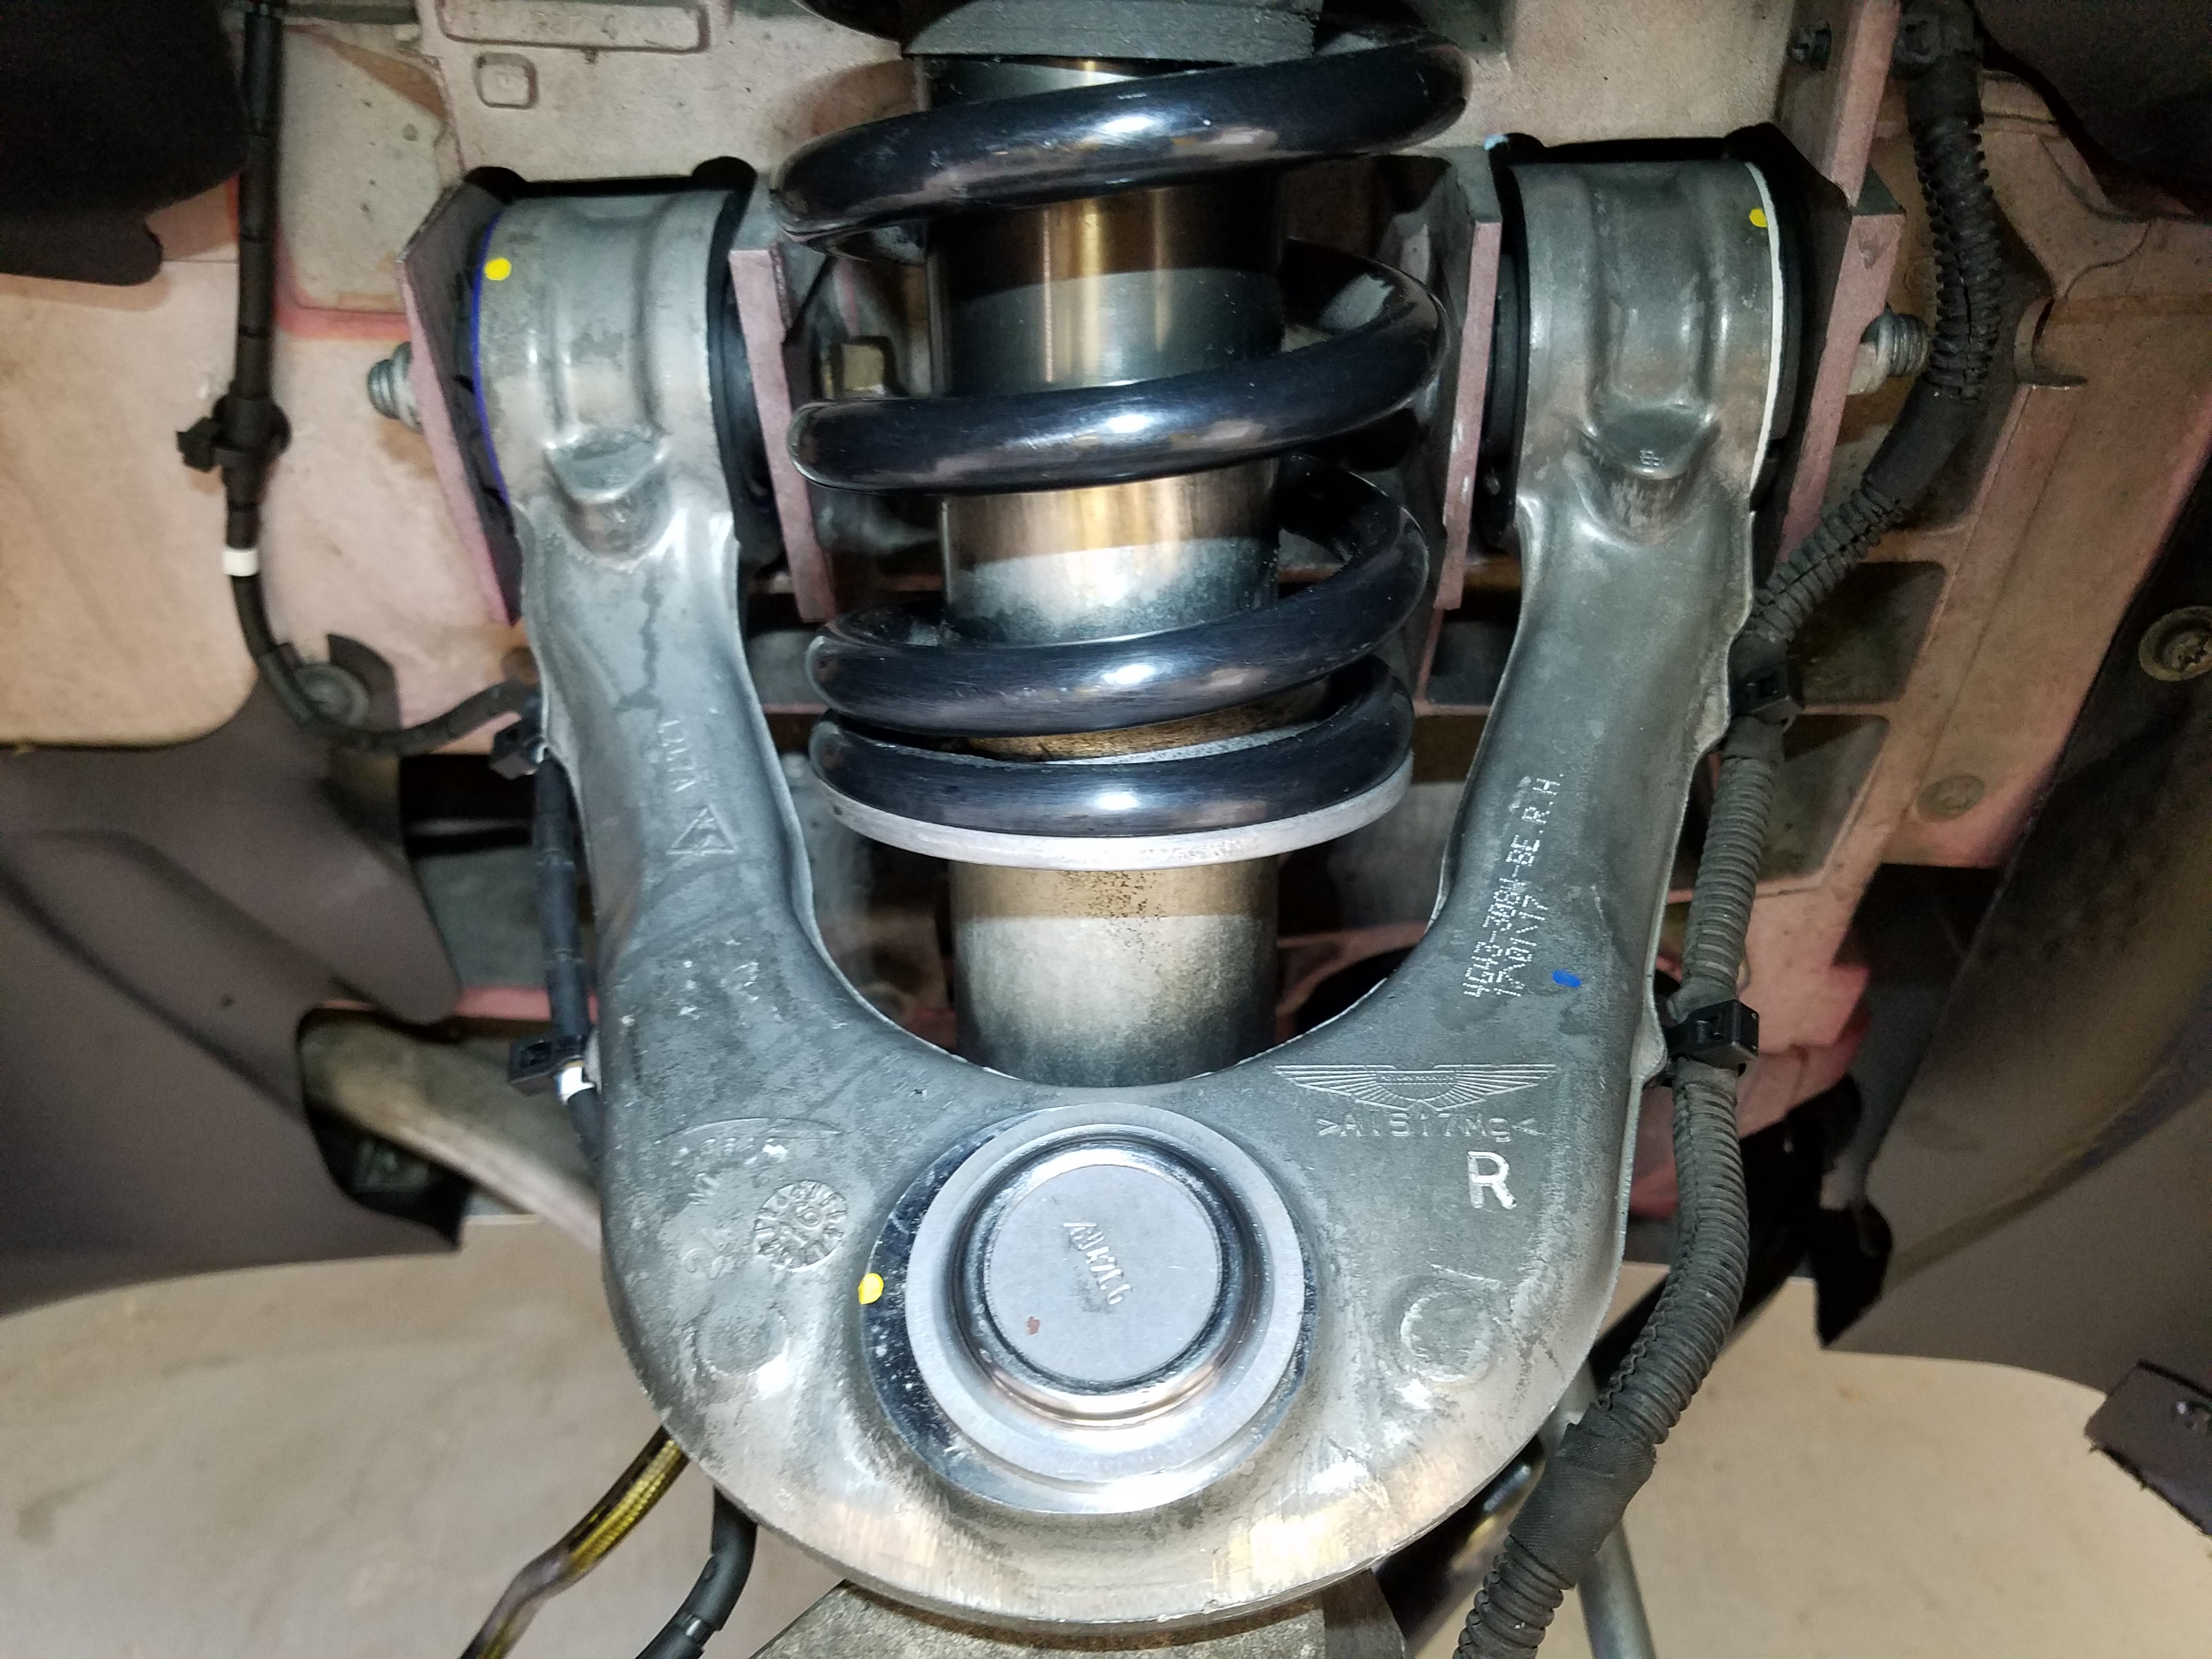 Seriestm Front Driver Side Lower Control Arm And Ball Joint Assembly